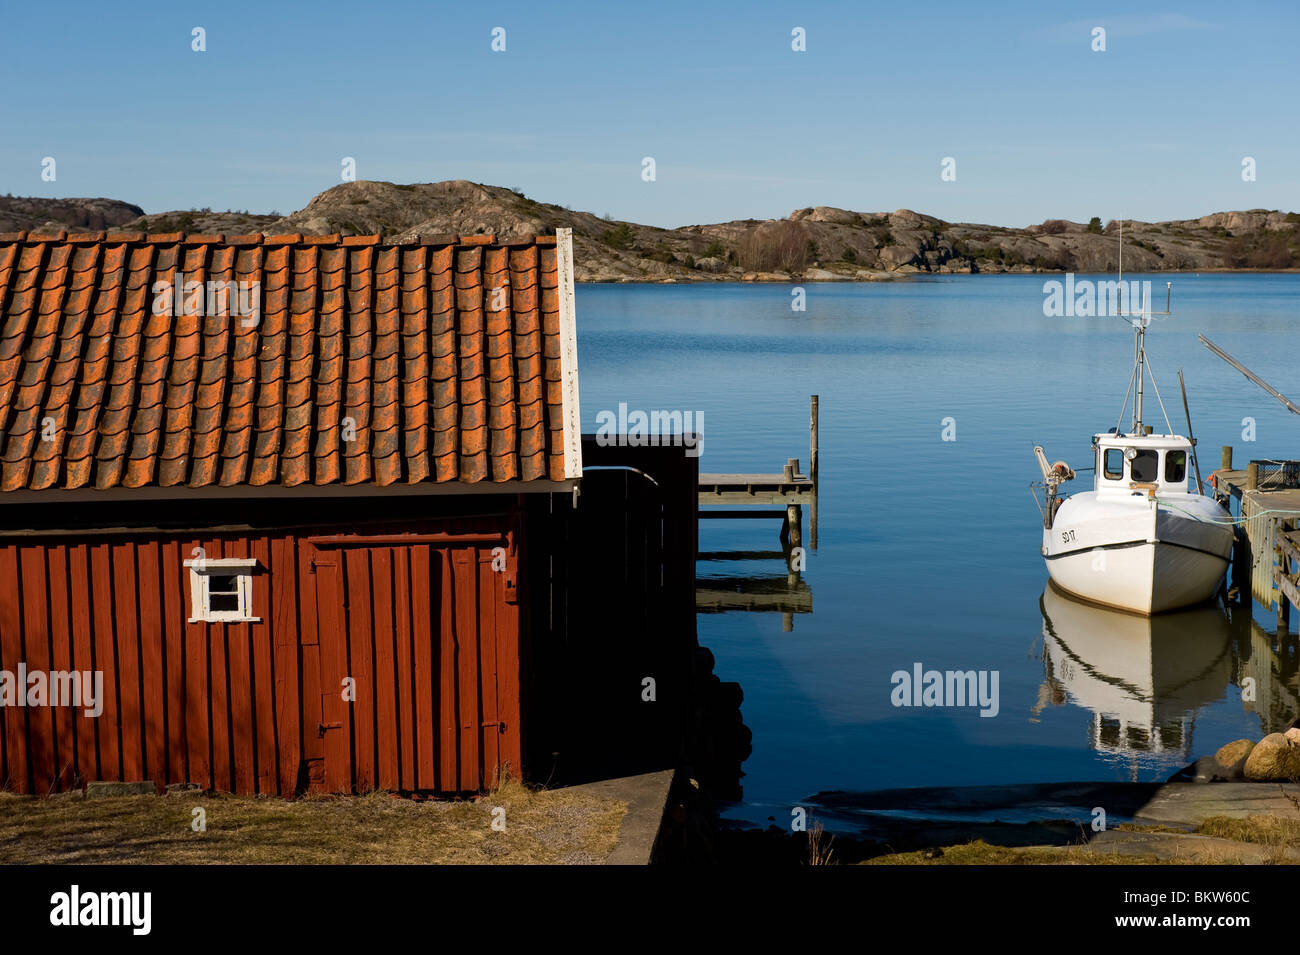 Boathouse and boat - Stock Image